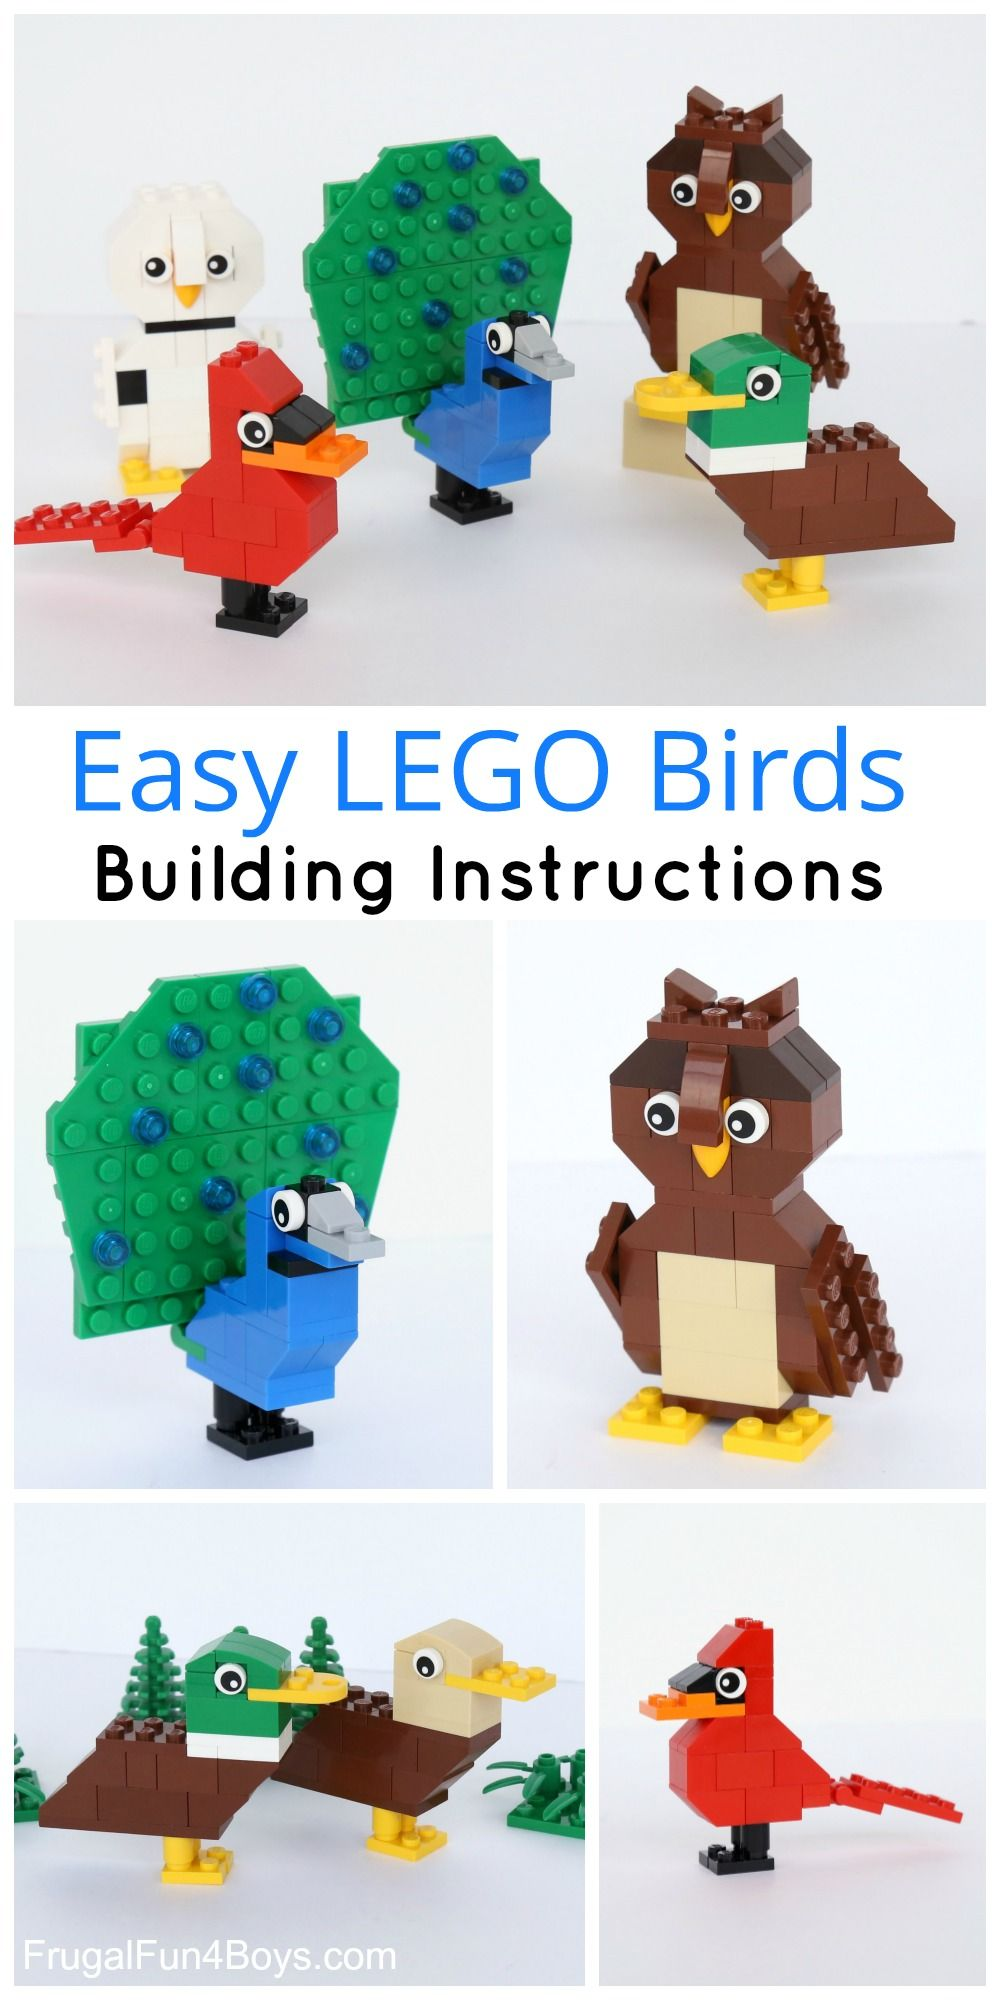 Simple brick birds building instructions lego cardinals for How to build a house step by step instructions